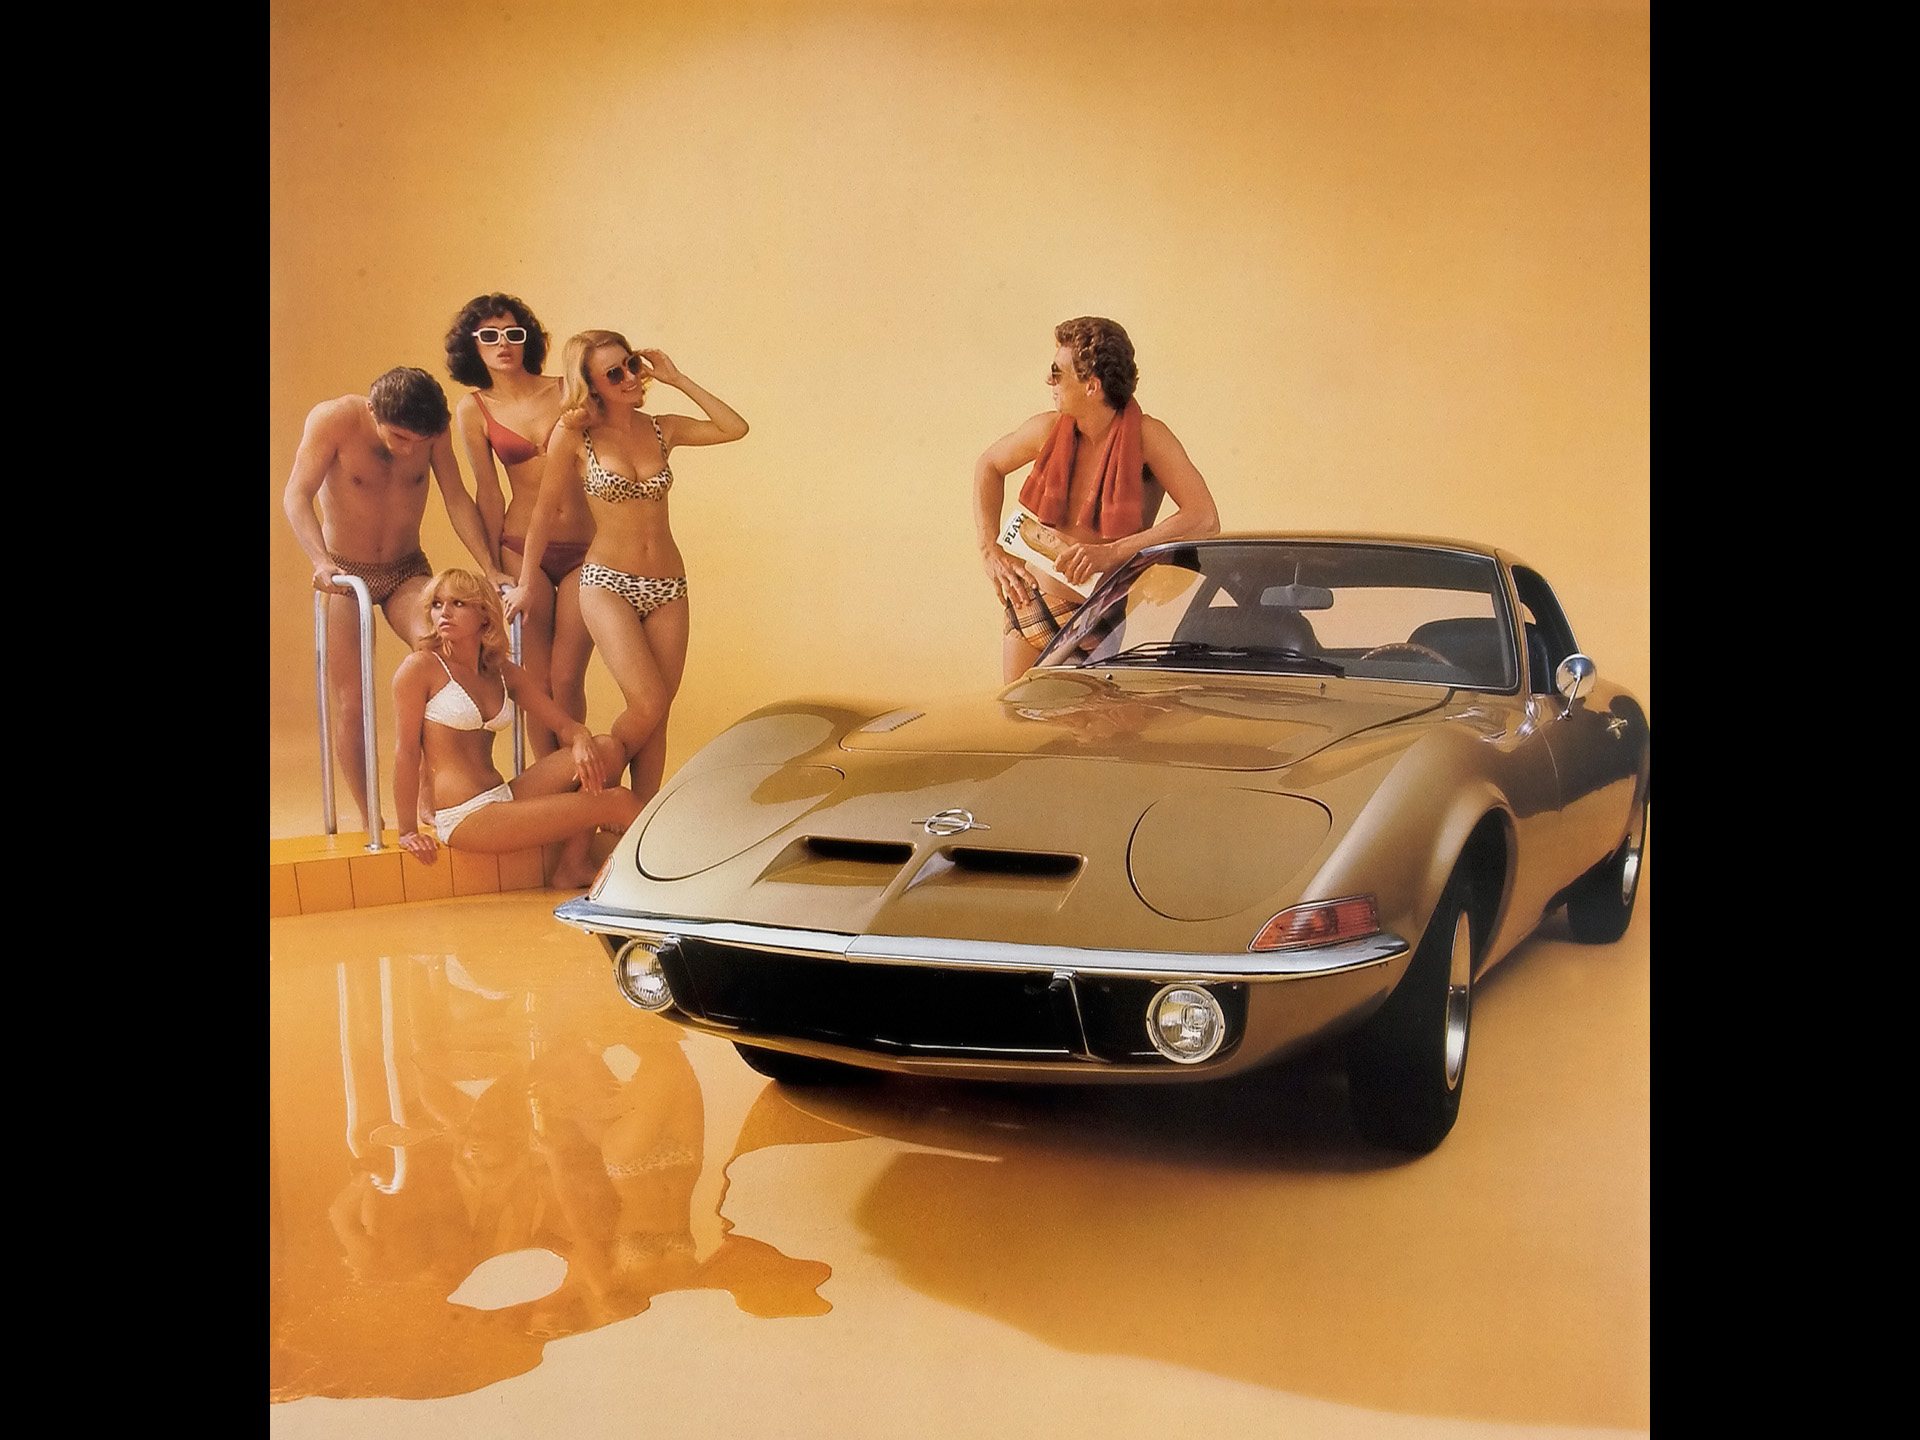 Opel-Period-Photos-of-Summer-1968-1973-Opel-GT-1920x1440